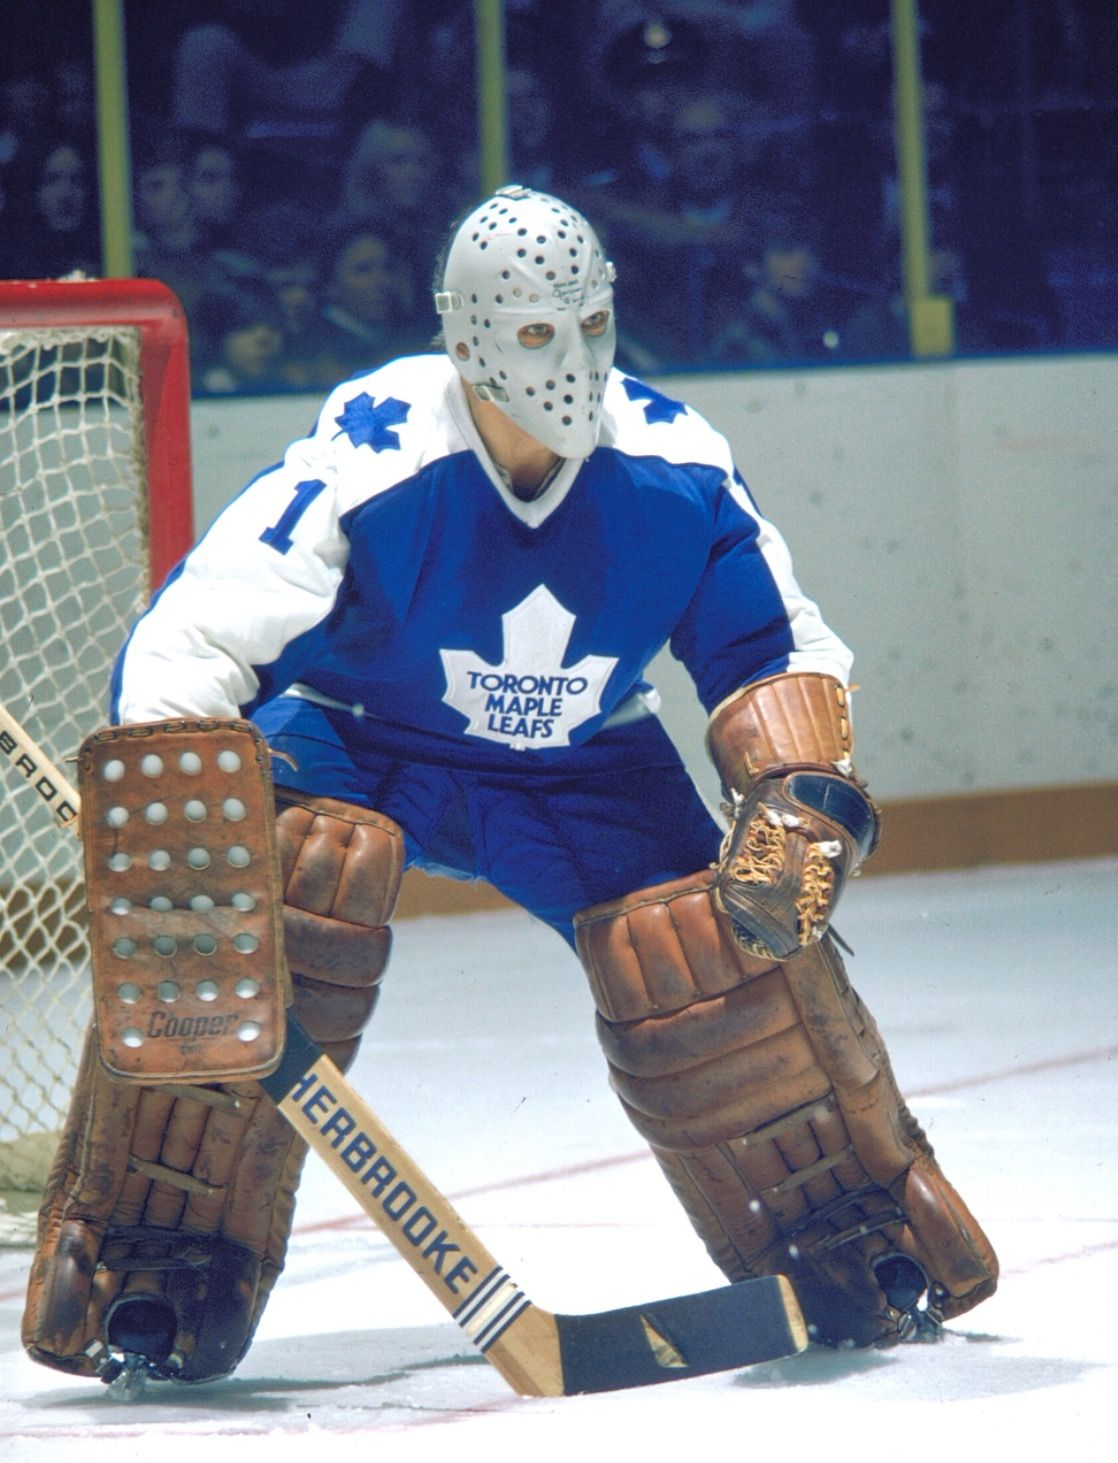 Jacques Plante (197073) Goalie mask, Maple leafs, Retro